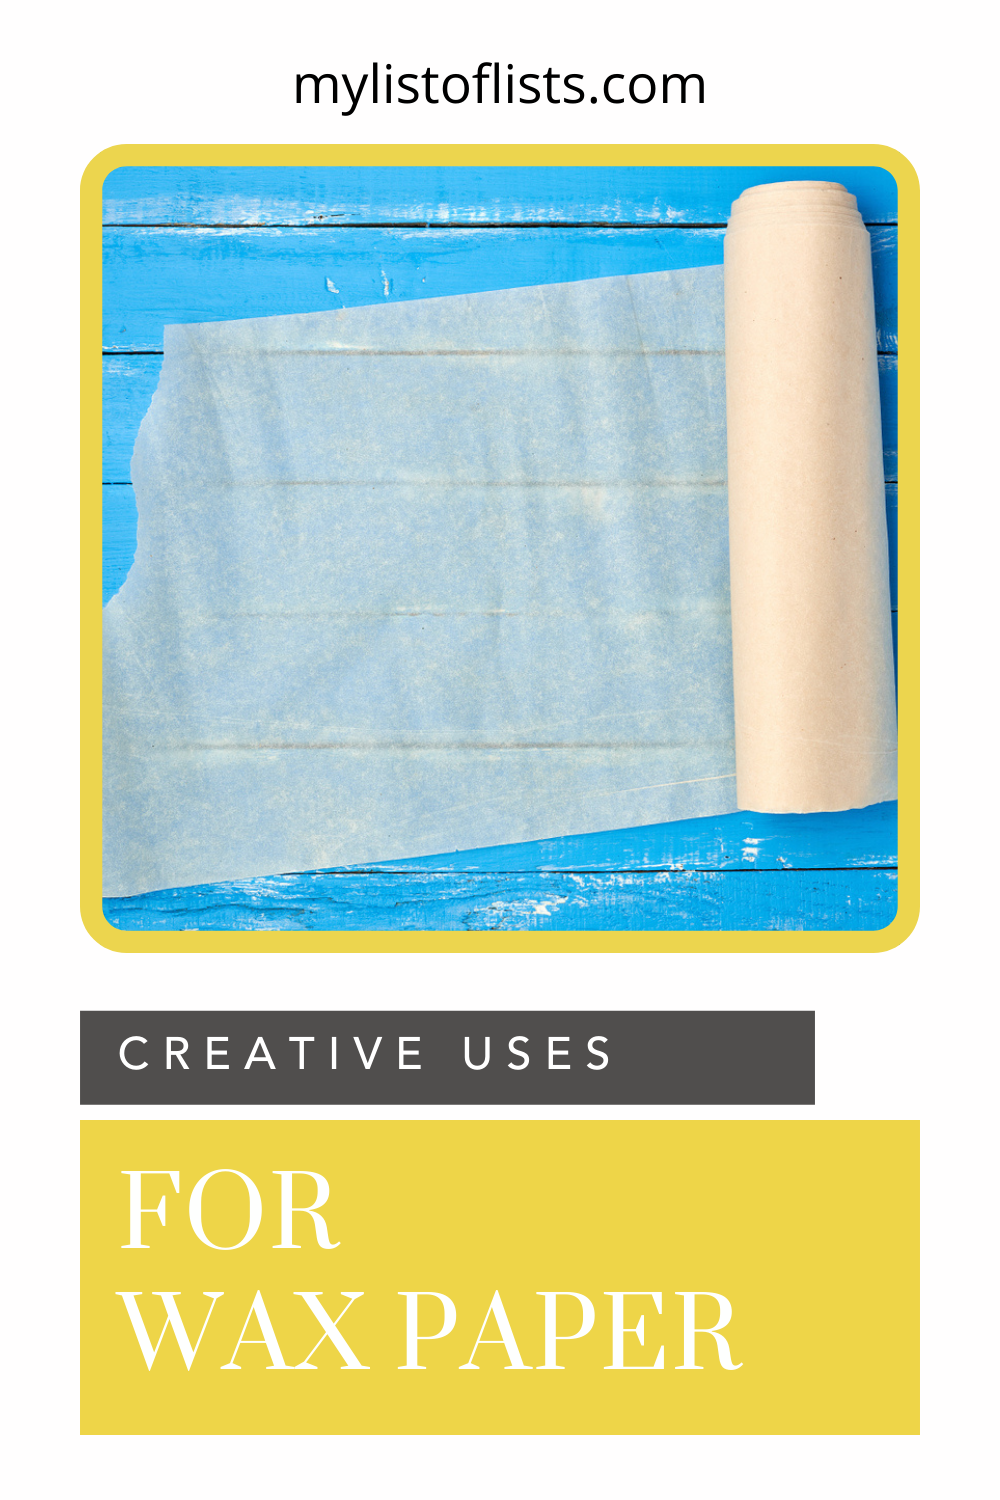 Mylistoflists.com has an eclectic compilation of tips and hacks to make all parts of your life easier. Find loads of ideas for creative and effective organization solutions. Learn how you can make the most of your wax paper with these clever uses!